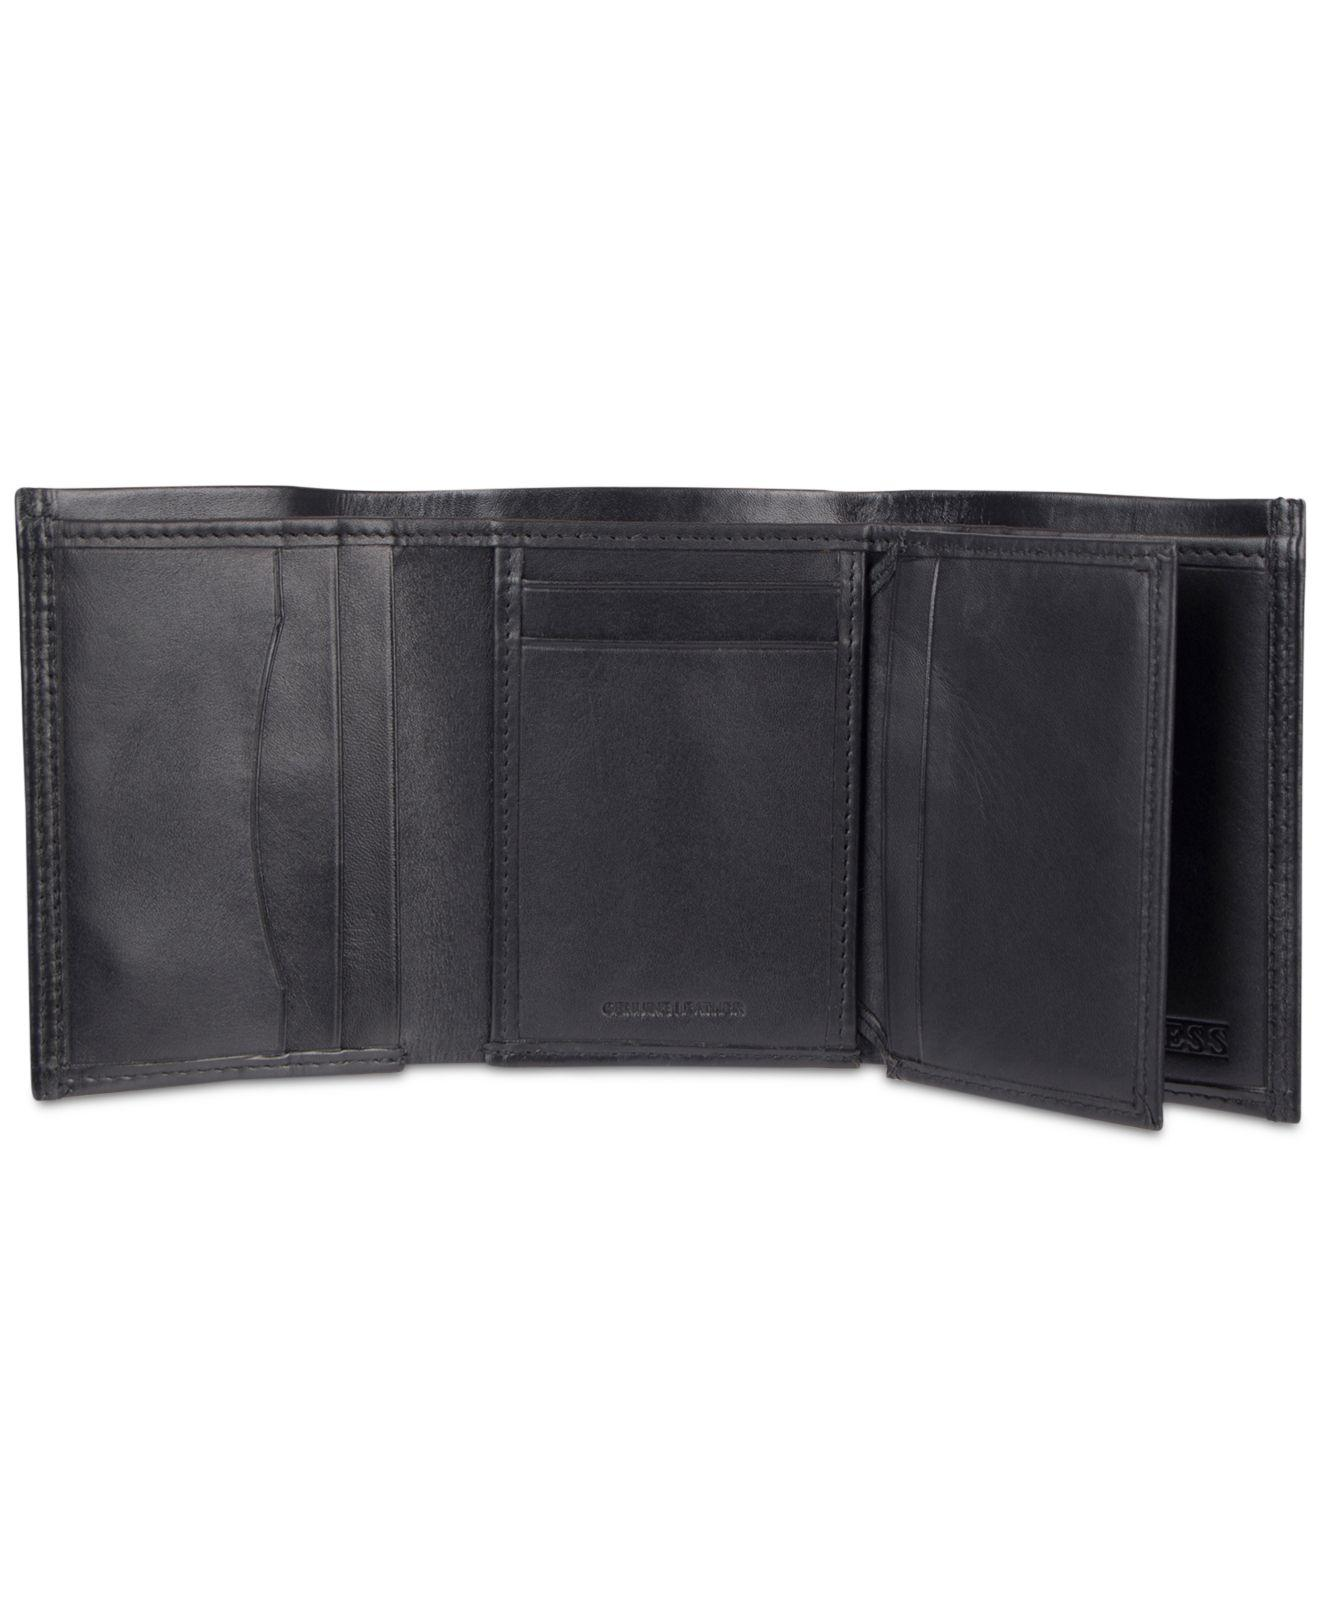 42a7eb8502 Lyst - Guess Wallet